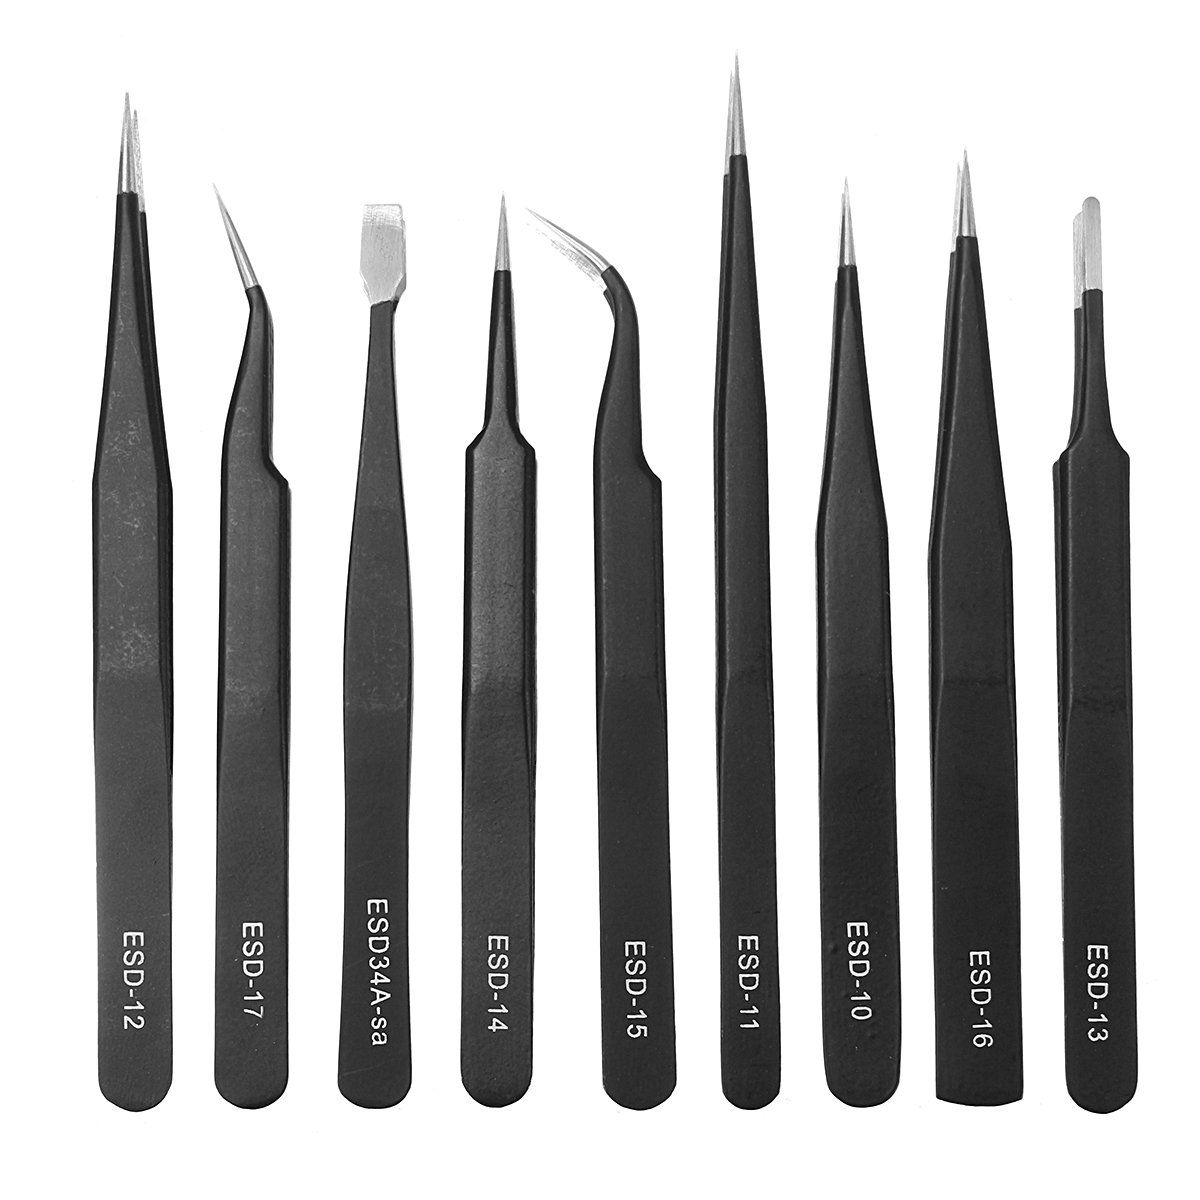 6pcs Gilded Non-magnetic Stainless Steel Jewelry ICs SMD Eyelash Tweezers Plier